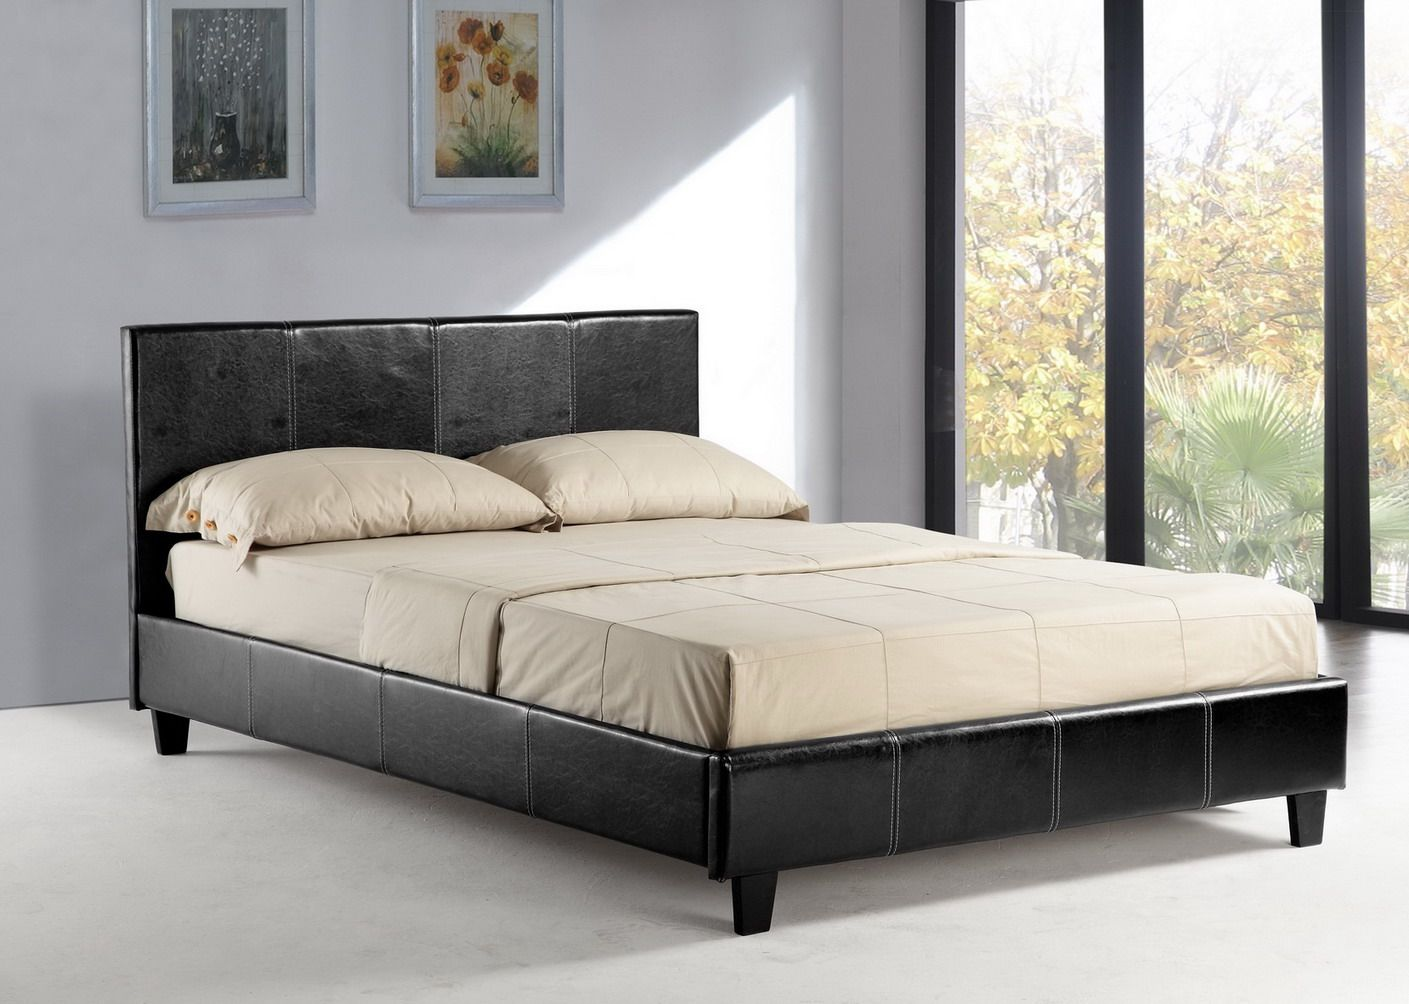 Attirant The Ultimate Guide To Buying A Double Bed